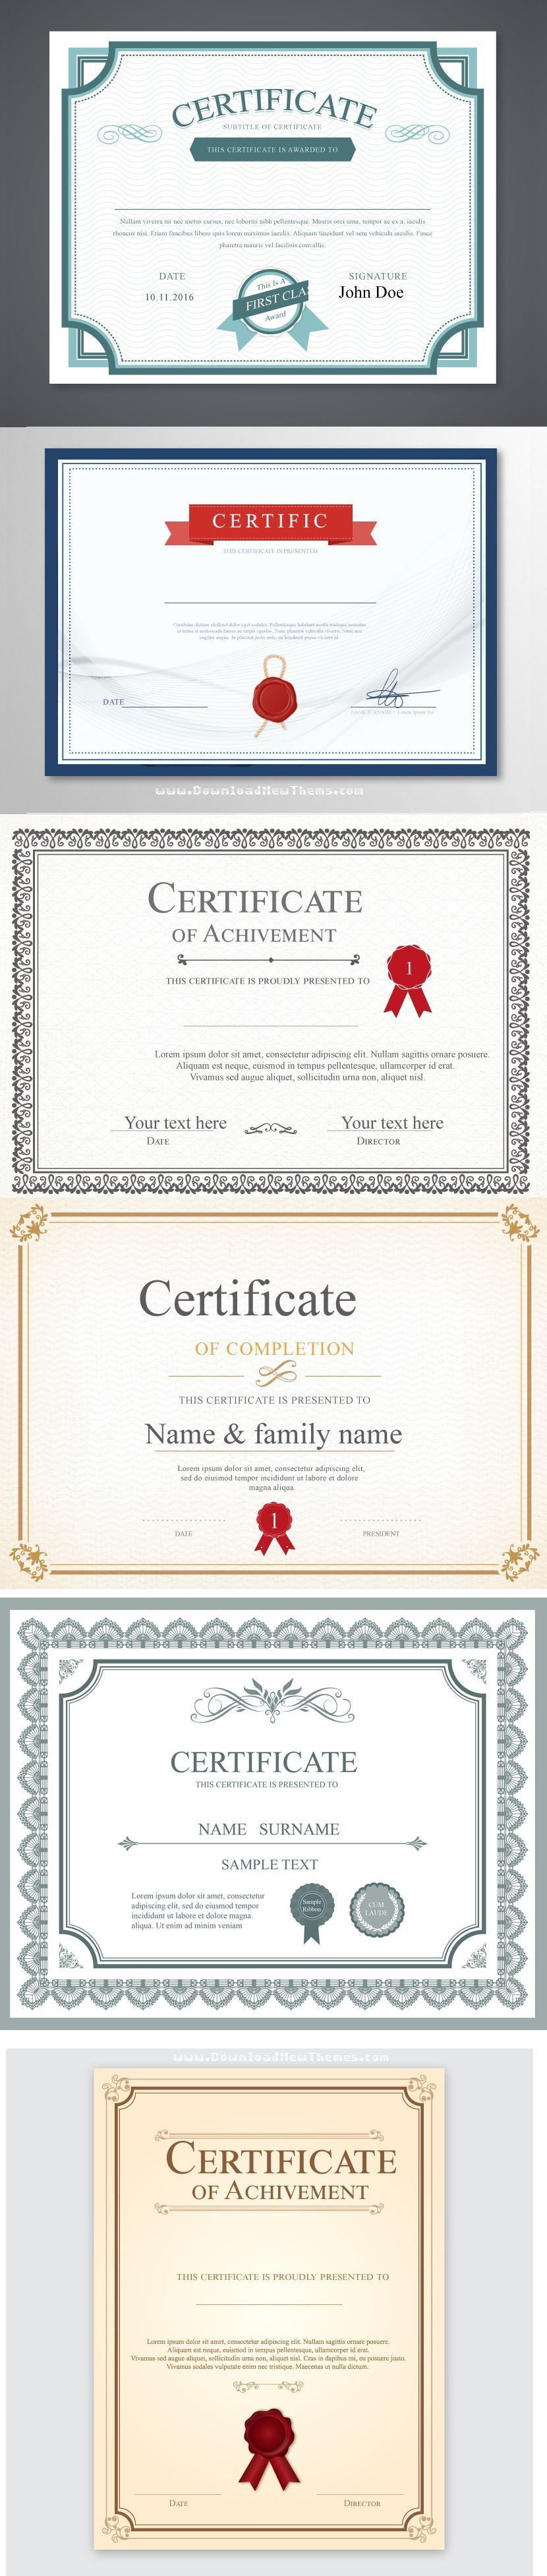 Certificado crafts pinterest certificate template and graphics certificado certificate layoutcertificate templatescertificate of meritgraduation yadclub Image collections